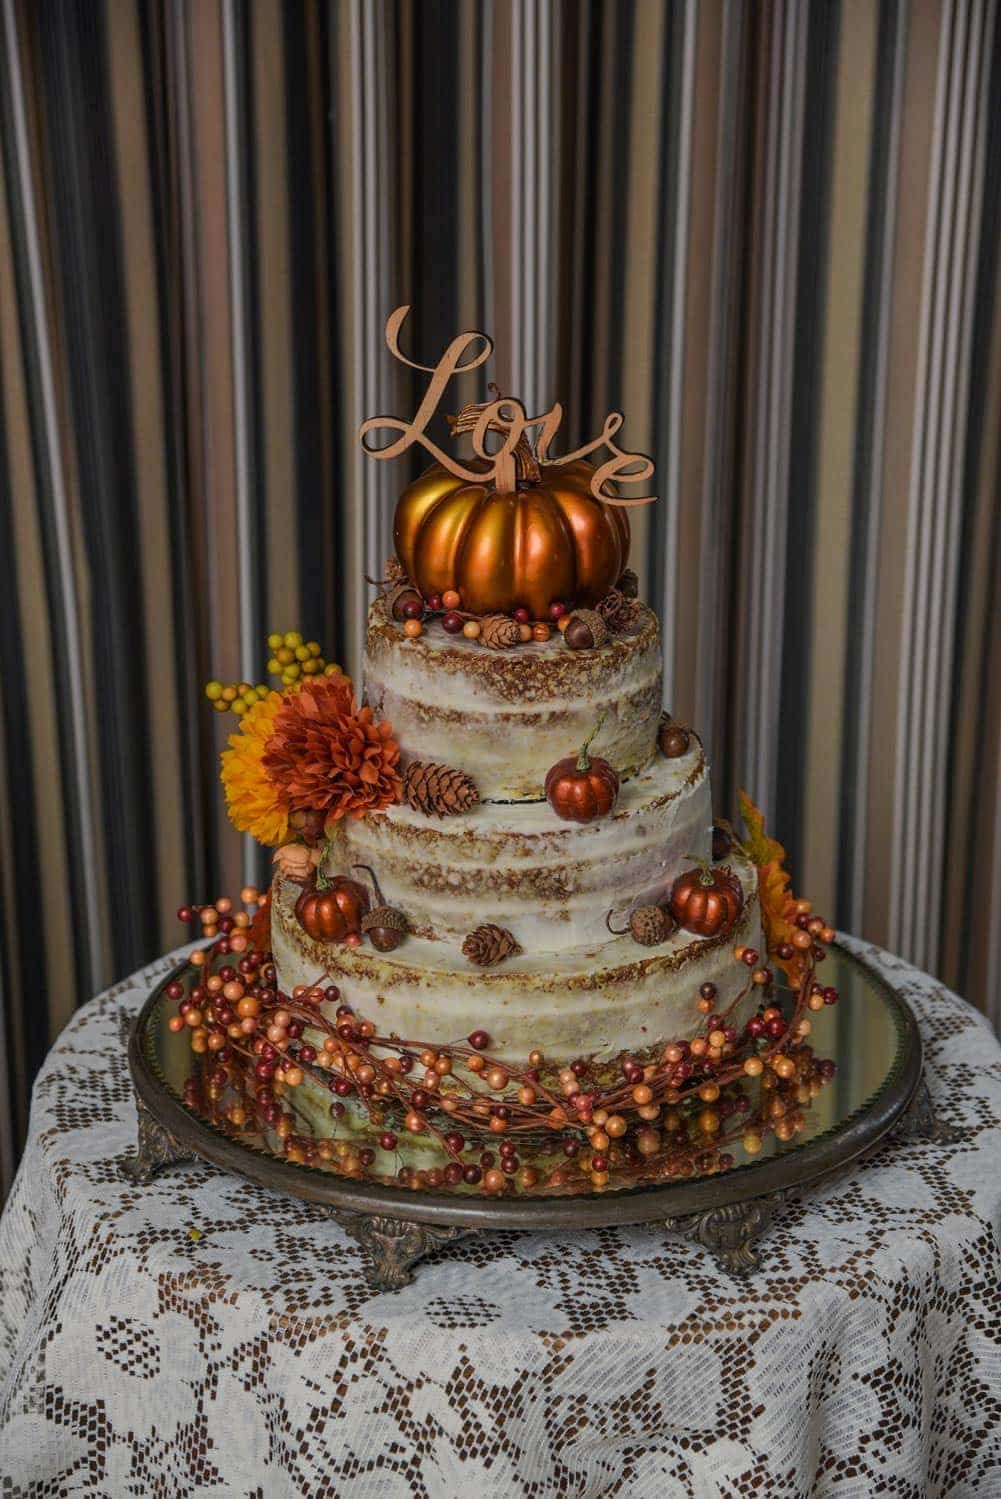 A 2 tier autumn themed wedding cake with pumpkins and love wedding cake topper at a White Point wedding.